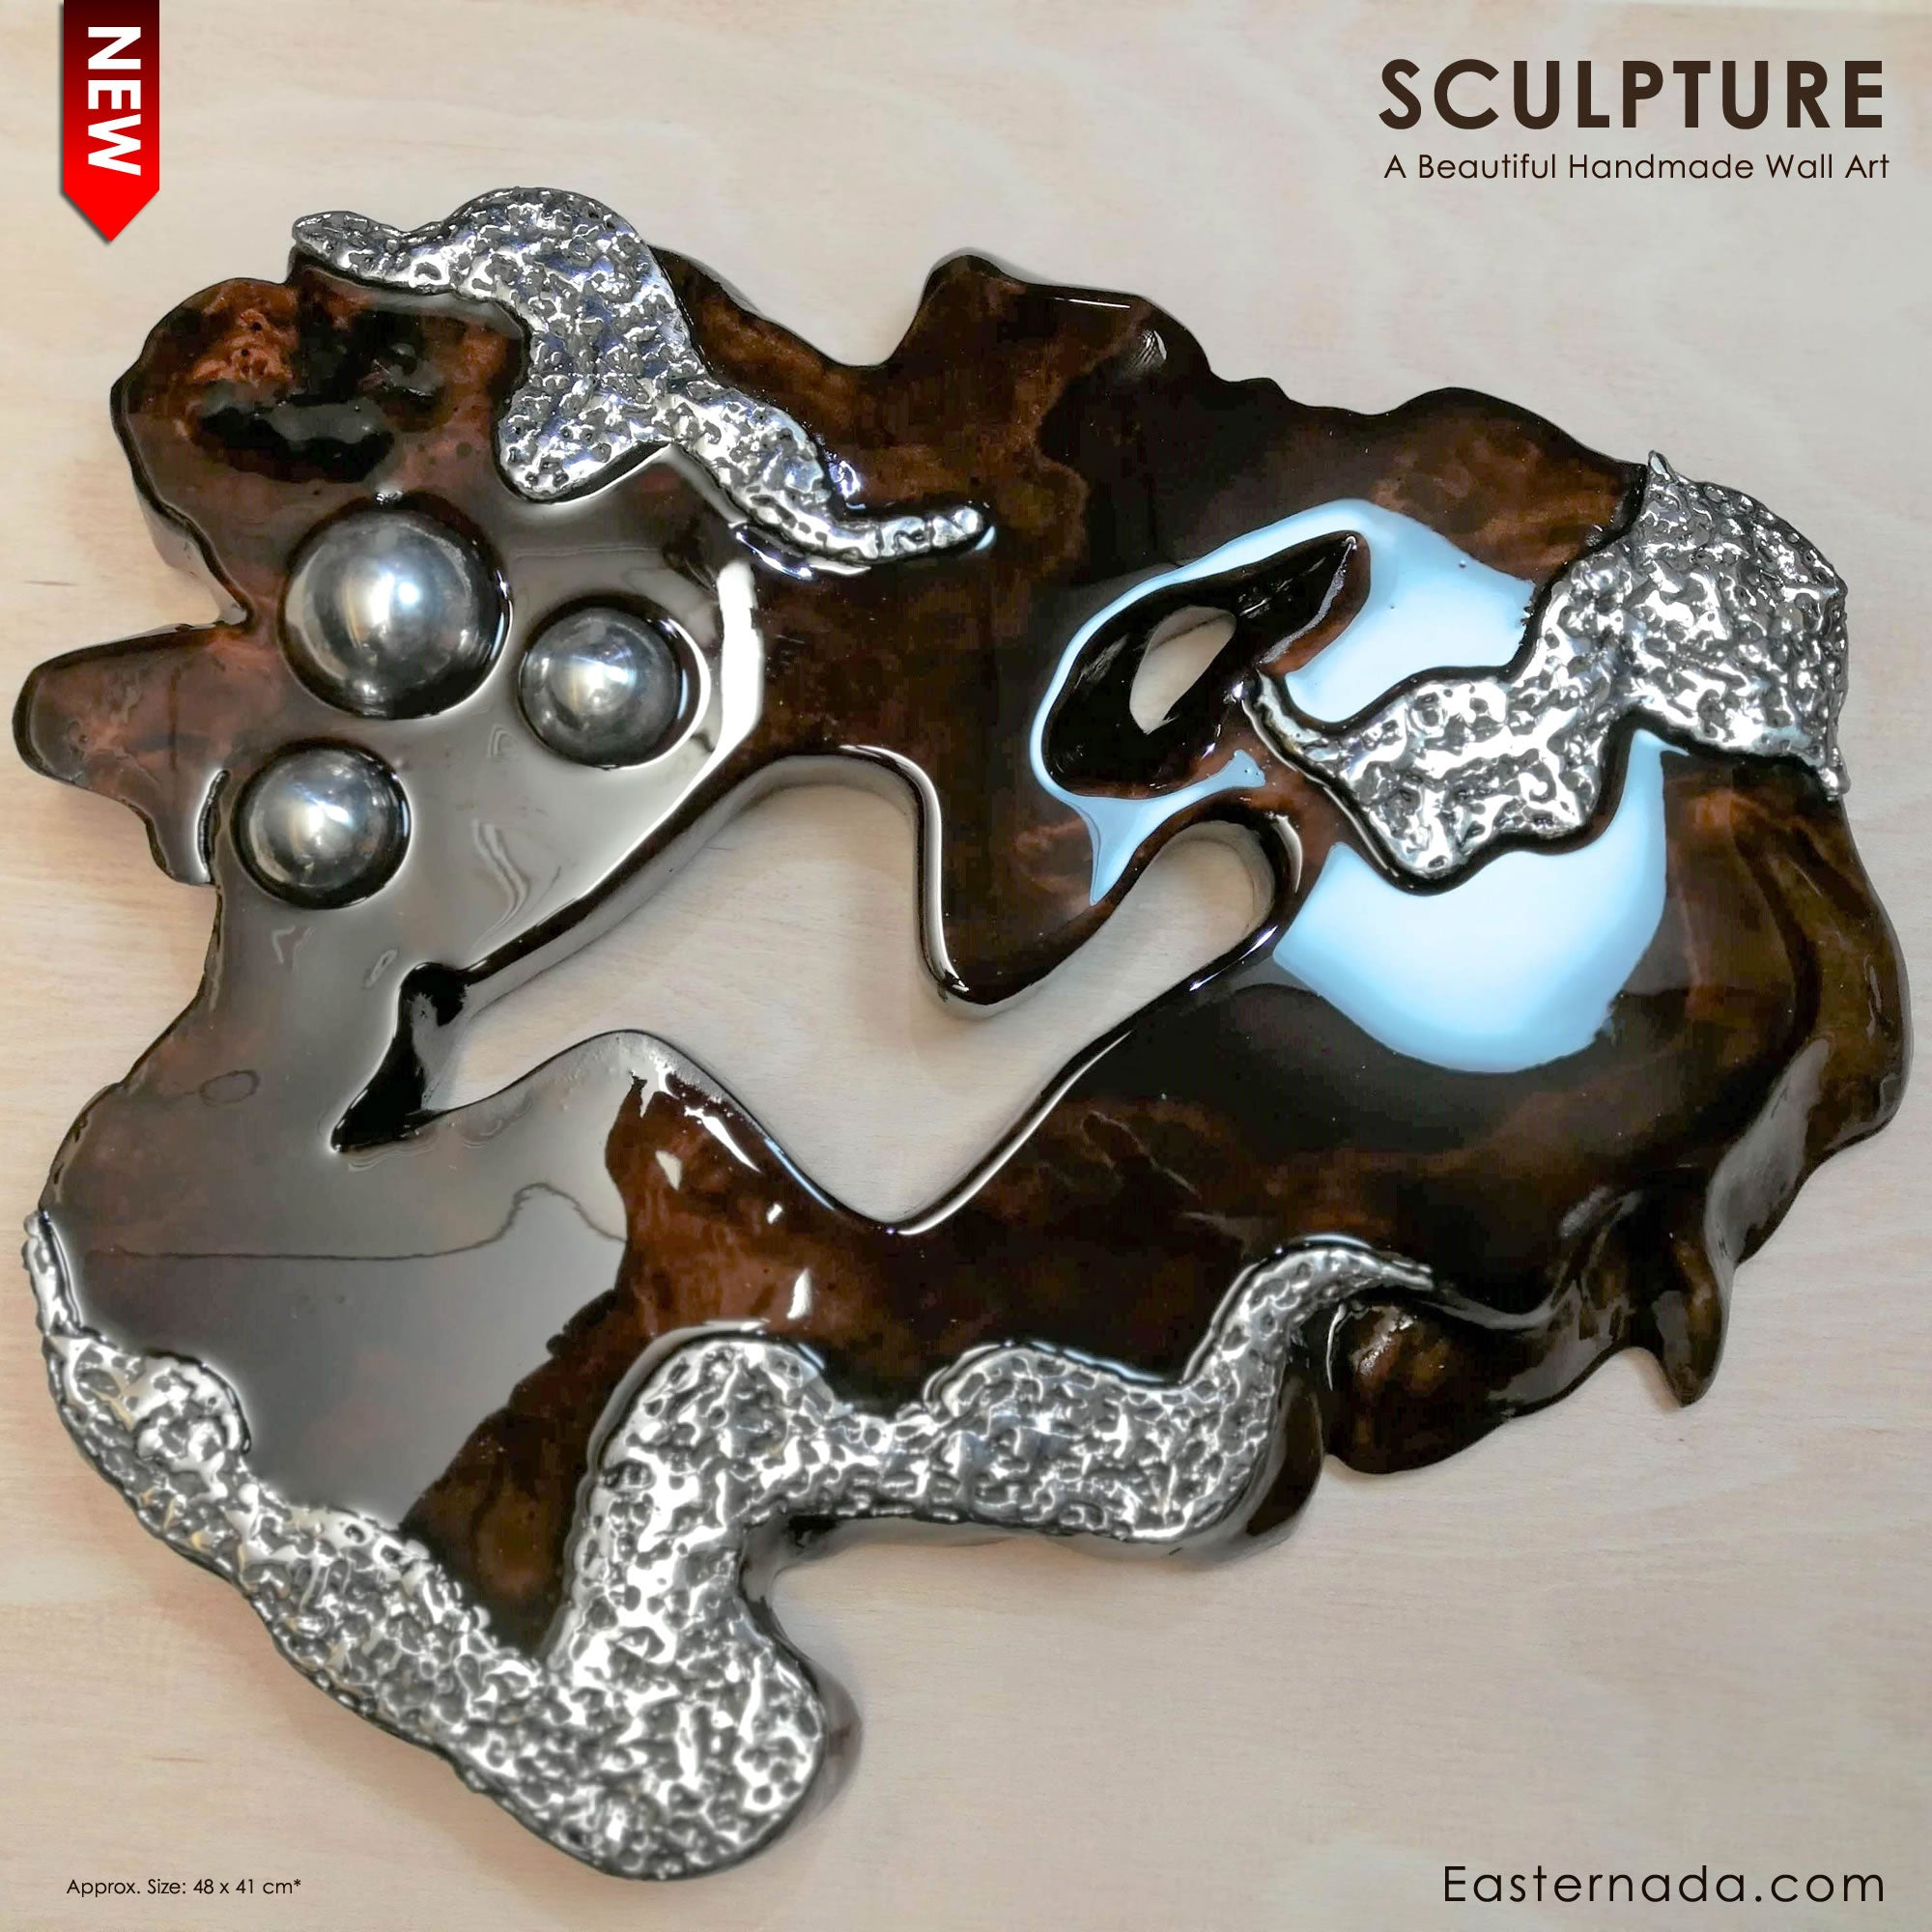 Hand made Decorative Solid Wood Stainless Steel Wall Art Sculpture - Easternada